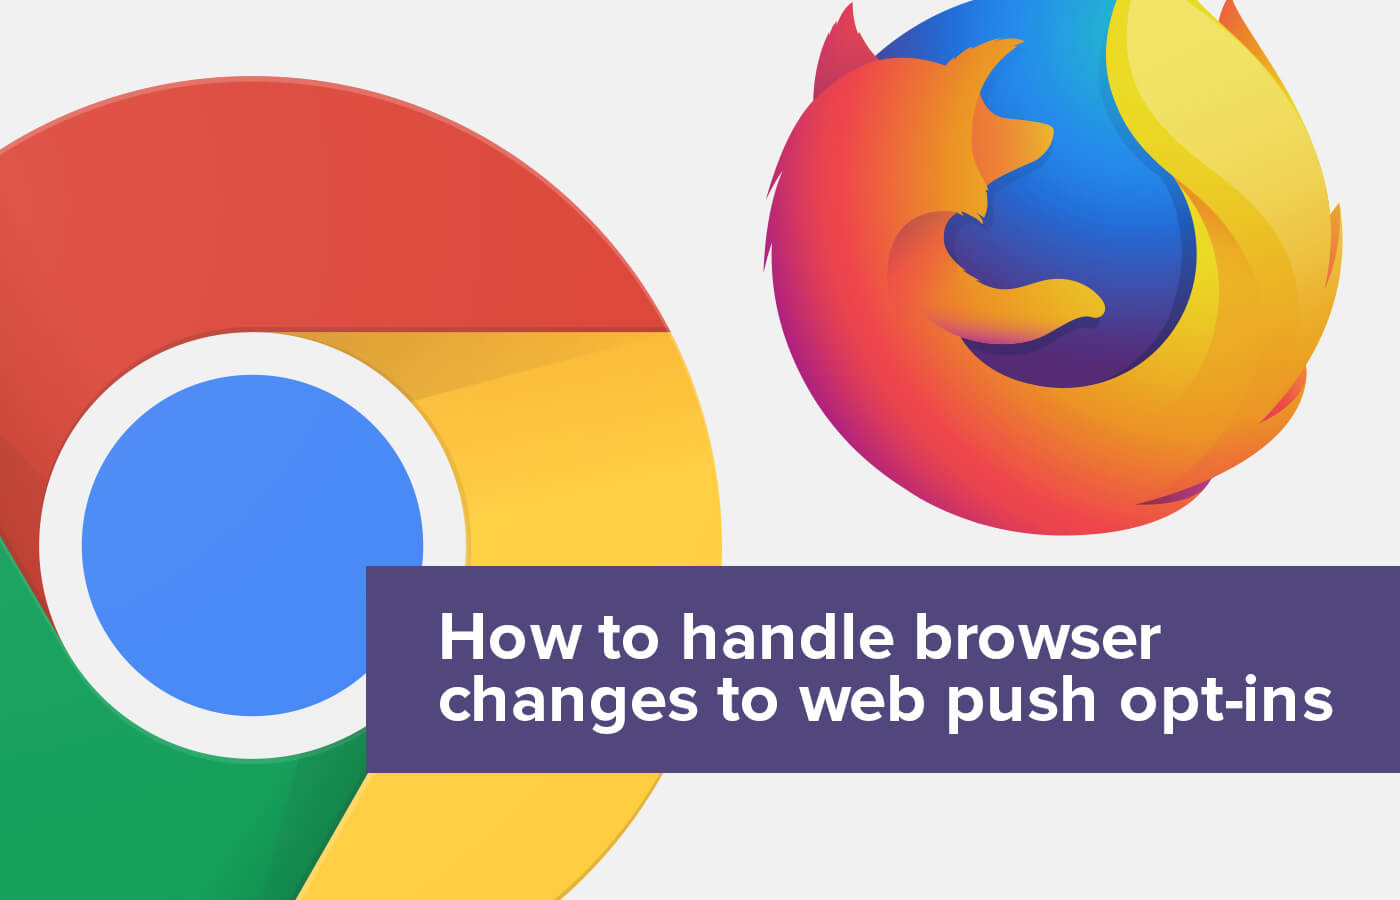 Browsers are making web push opt-ins 'quieter': here's what you need to do